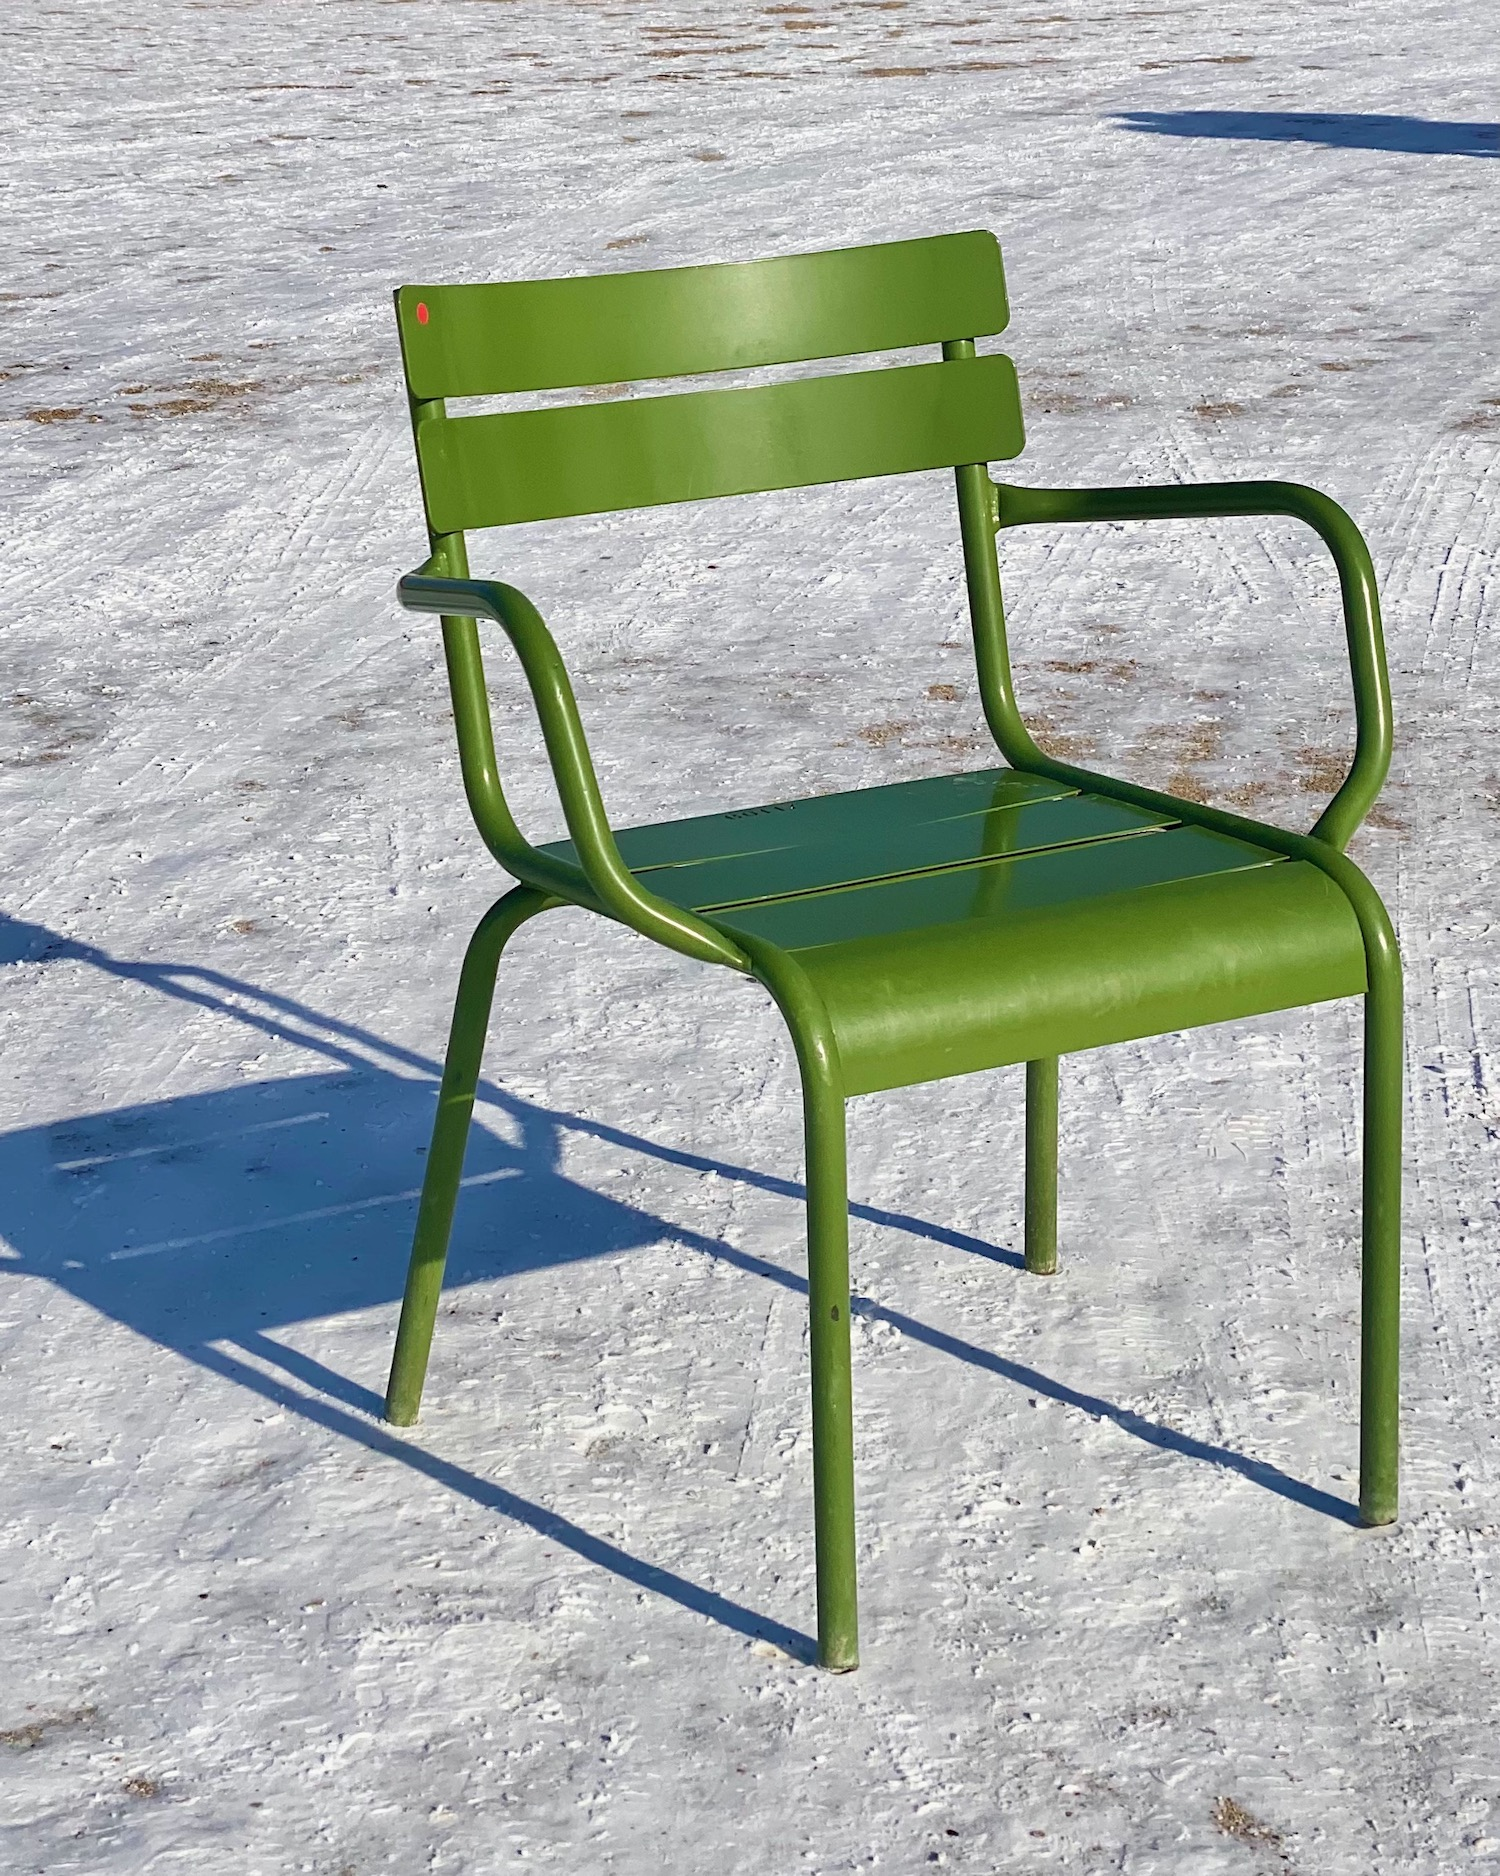 snow in the tuileries garden with a green chair